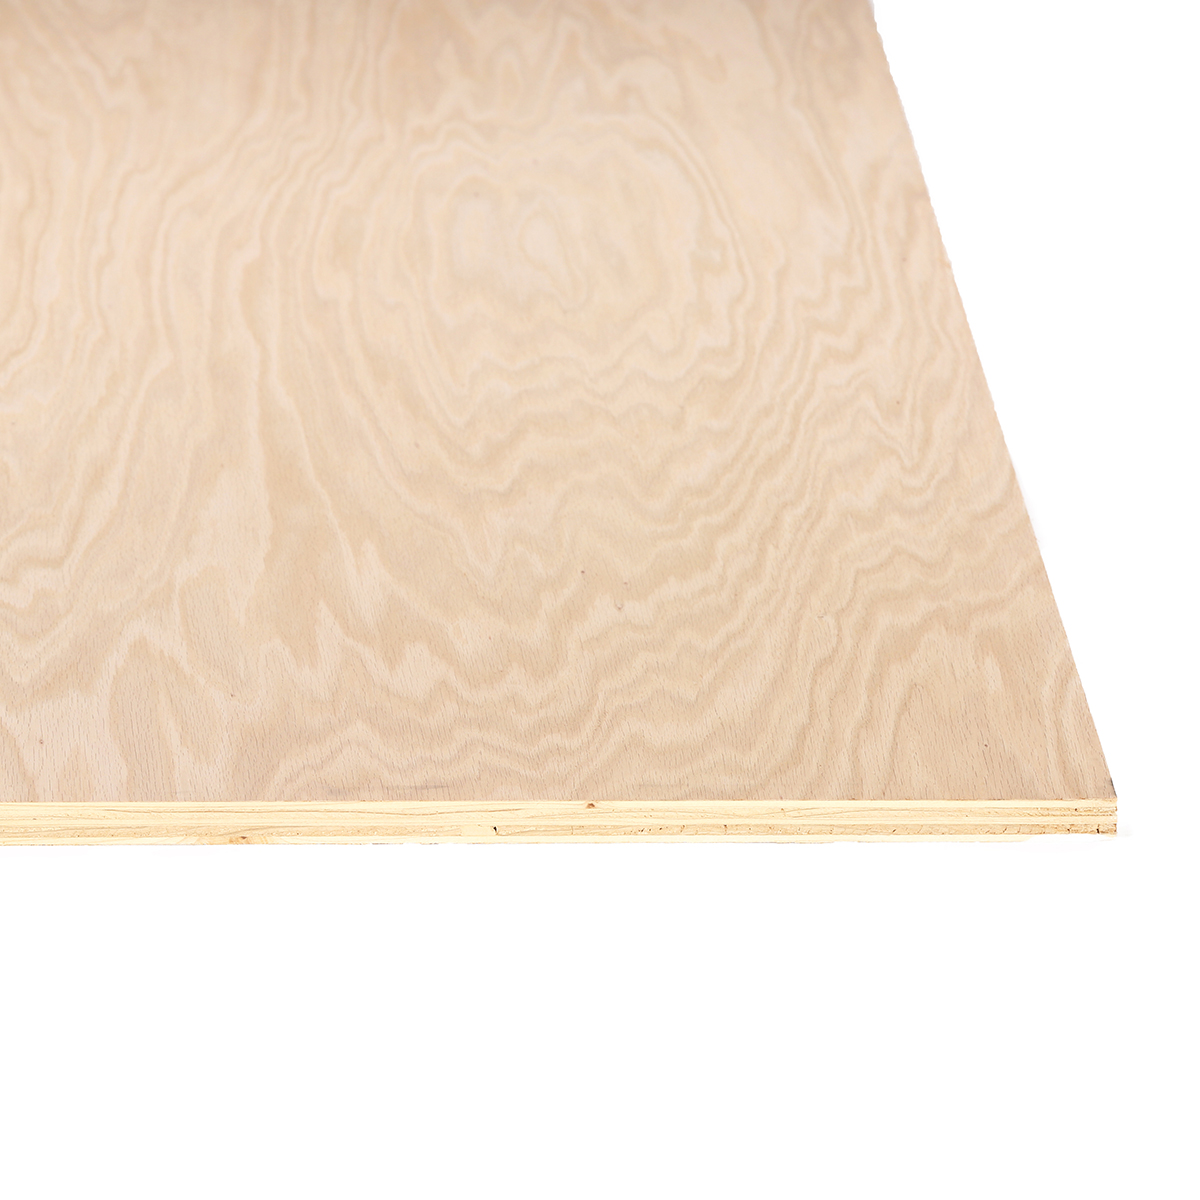 3 4 Red Oak 4 X8 Plywood G2s Made In Usa